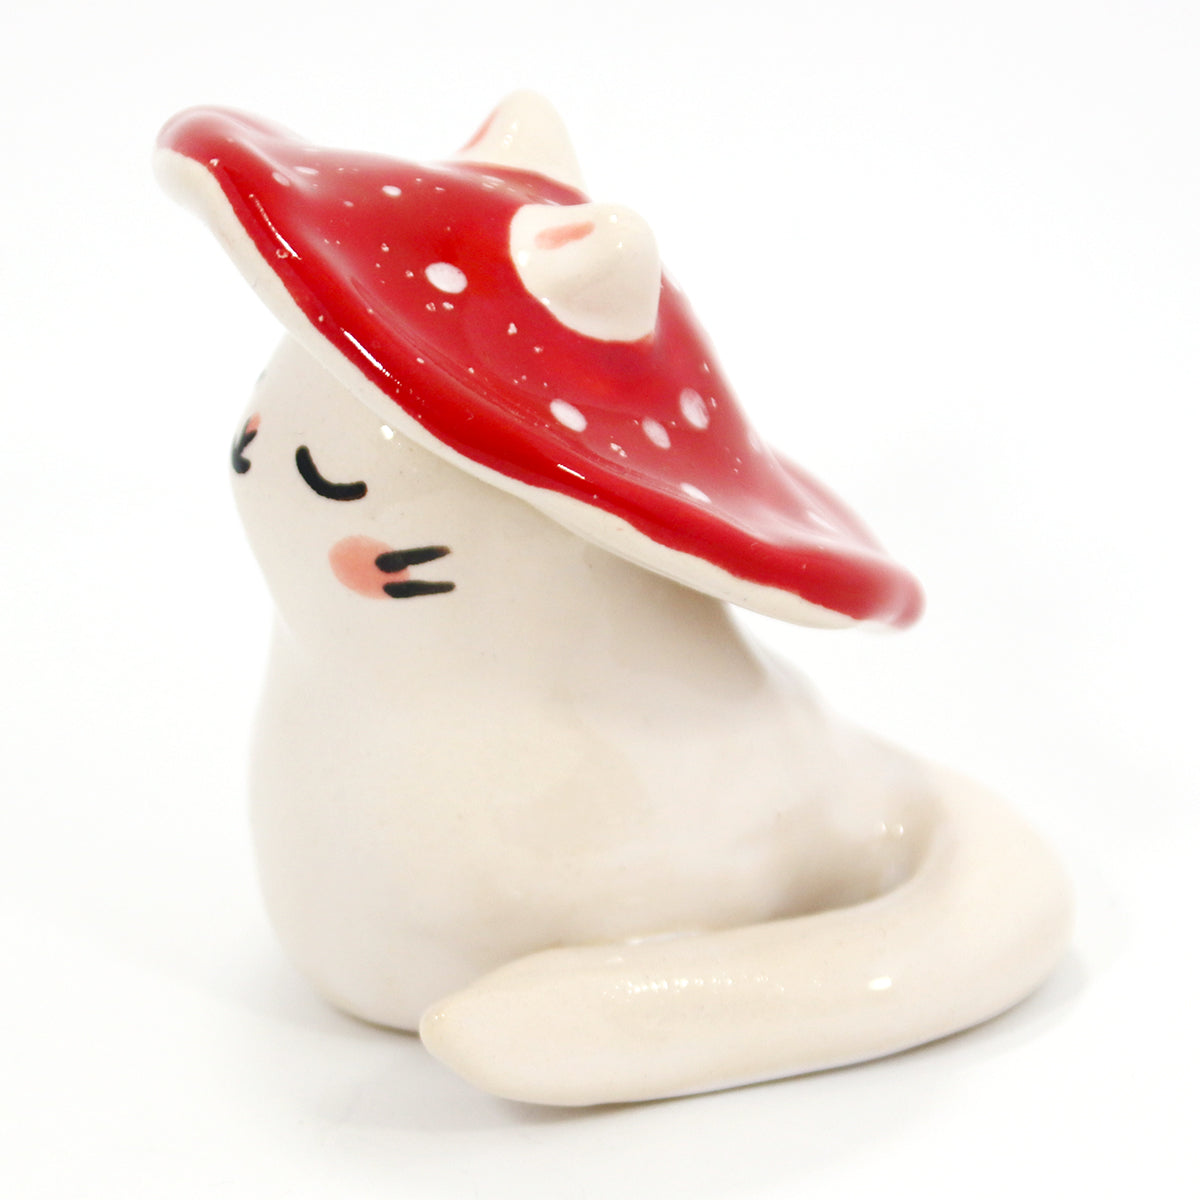 Ceramic Mushroom Kitty Figurine #1420